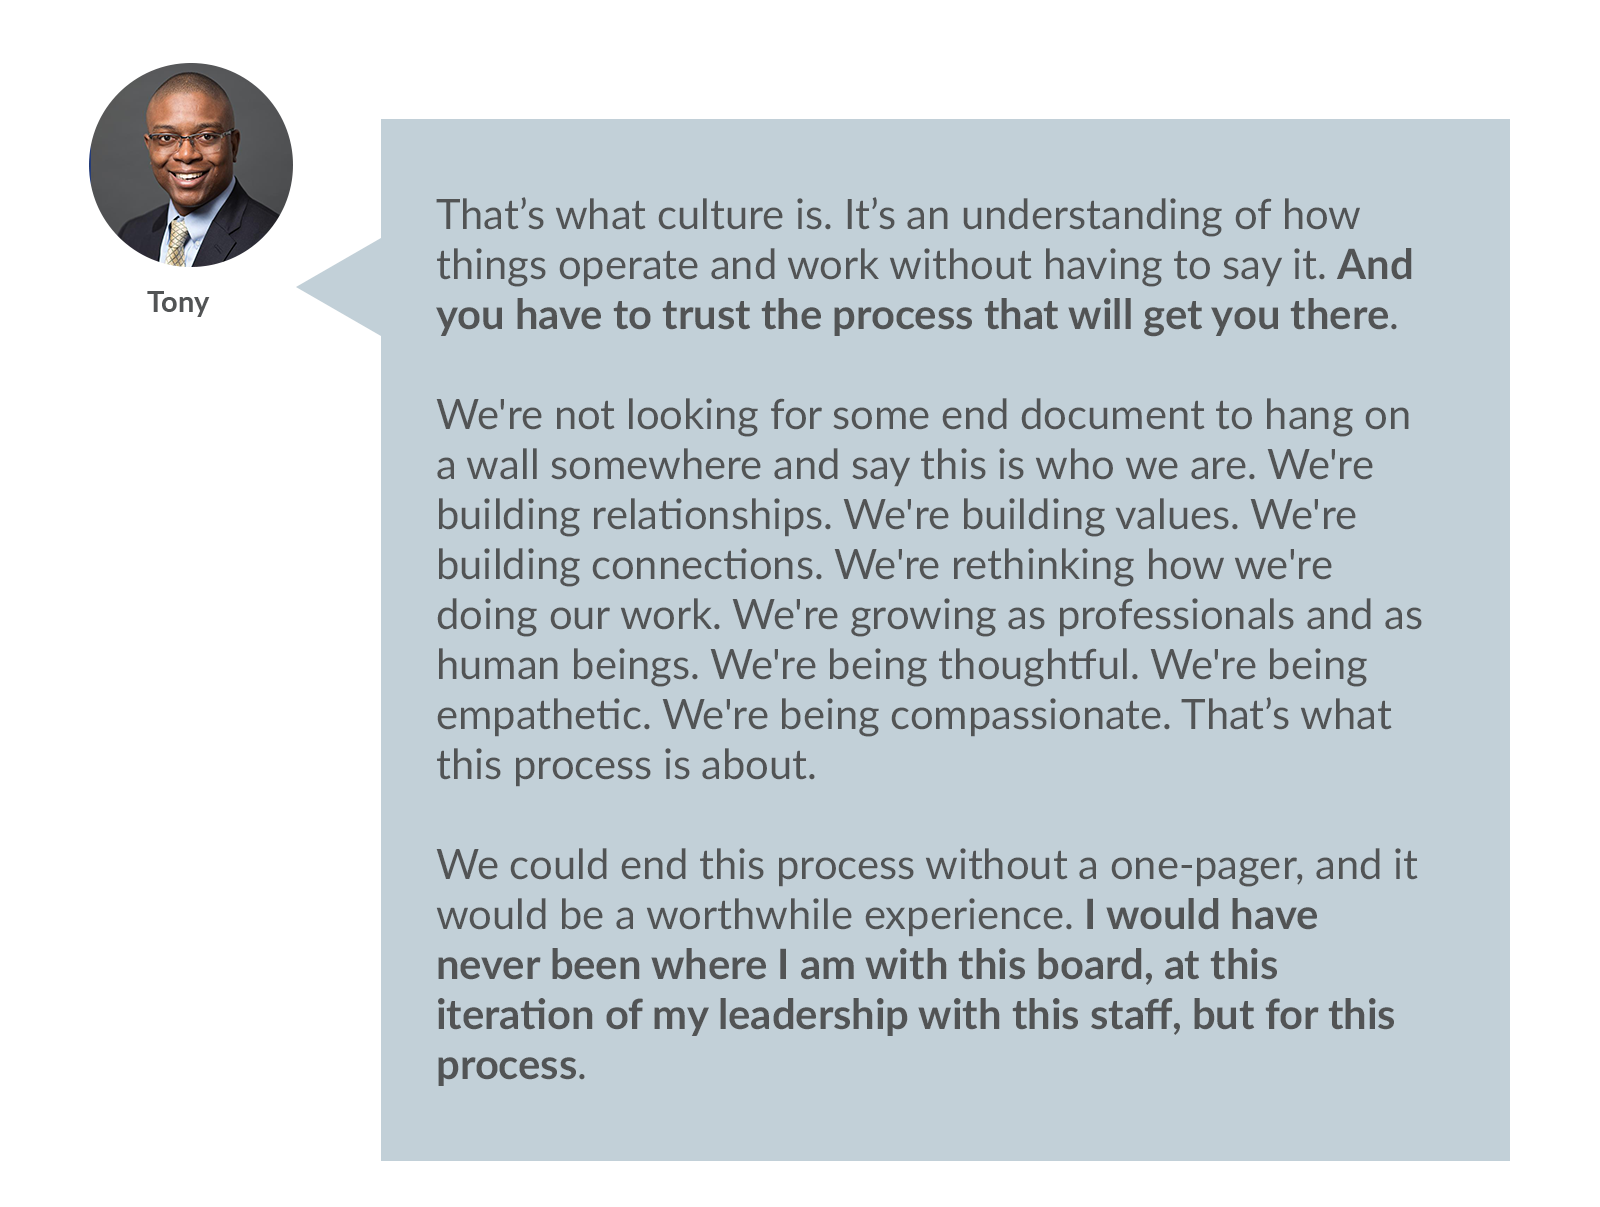 Tony: That's what culture is. It's an understanding of how things operate and work without having to say it. And you have to trust the process that will get you there.   We're not looking for some end document to hang on a wall somewhere and say this is who we are. We're building relationships. We're building values. We're building connections. We're rethinking how we're doing our work. We're growing as professionals and as human beings. We're being thoughtful. We're being empathetic. We're being compassionate. That's what this process is about.   We could end this process without a one-pager, and it would be a worthwhile experience. I would have never been where I am with this board, at this iteration of my leadership with this staff, but for this process.